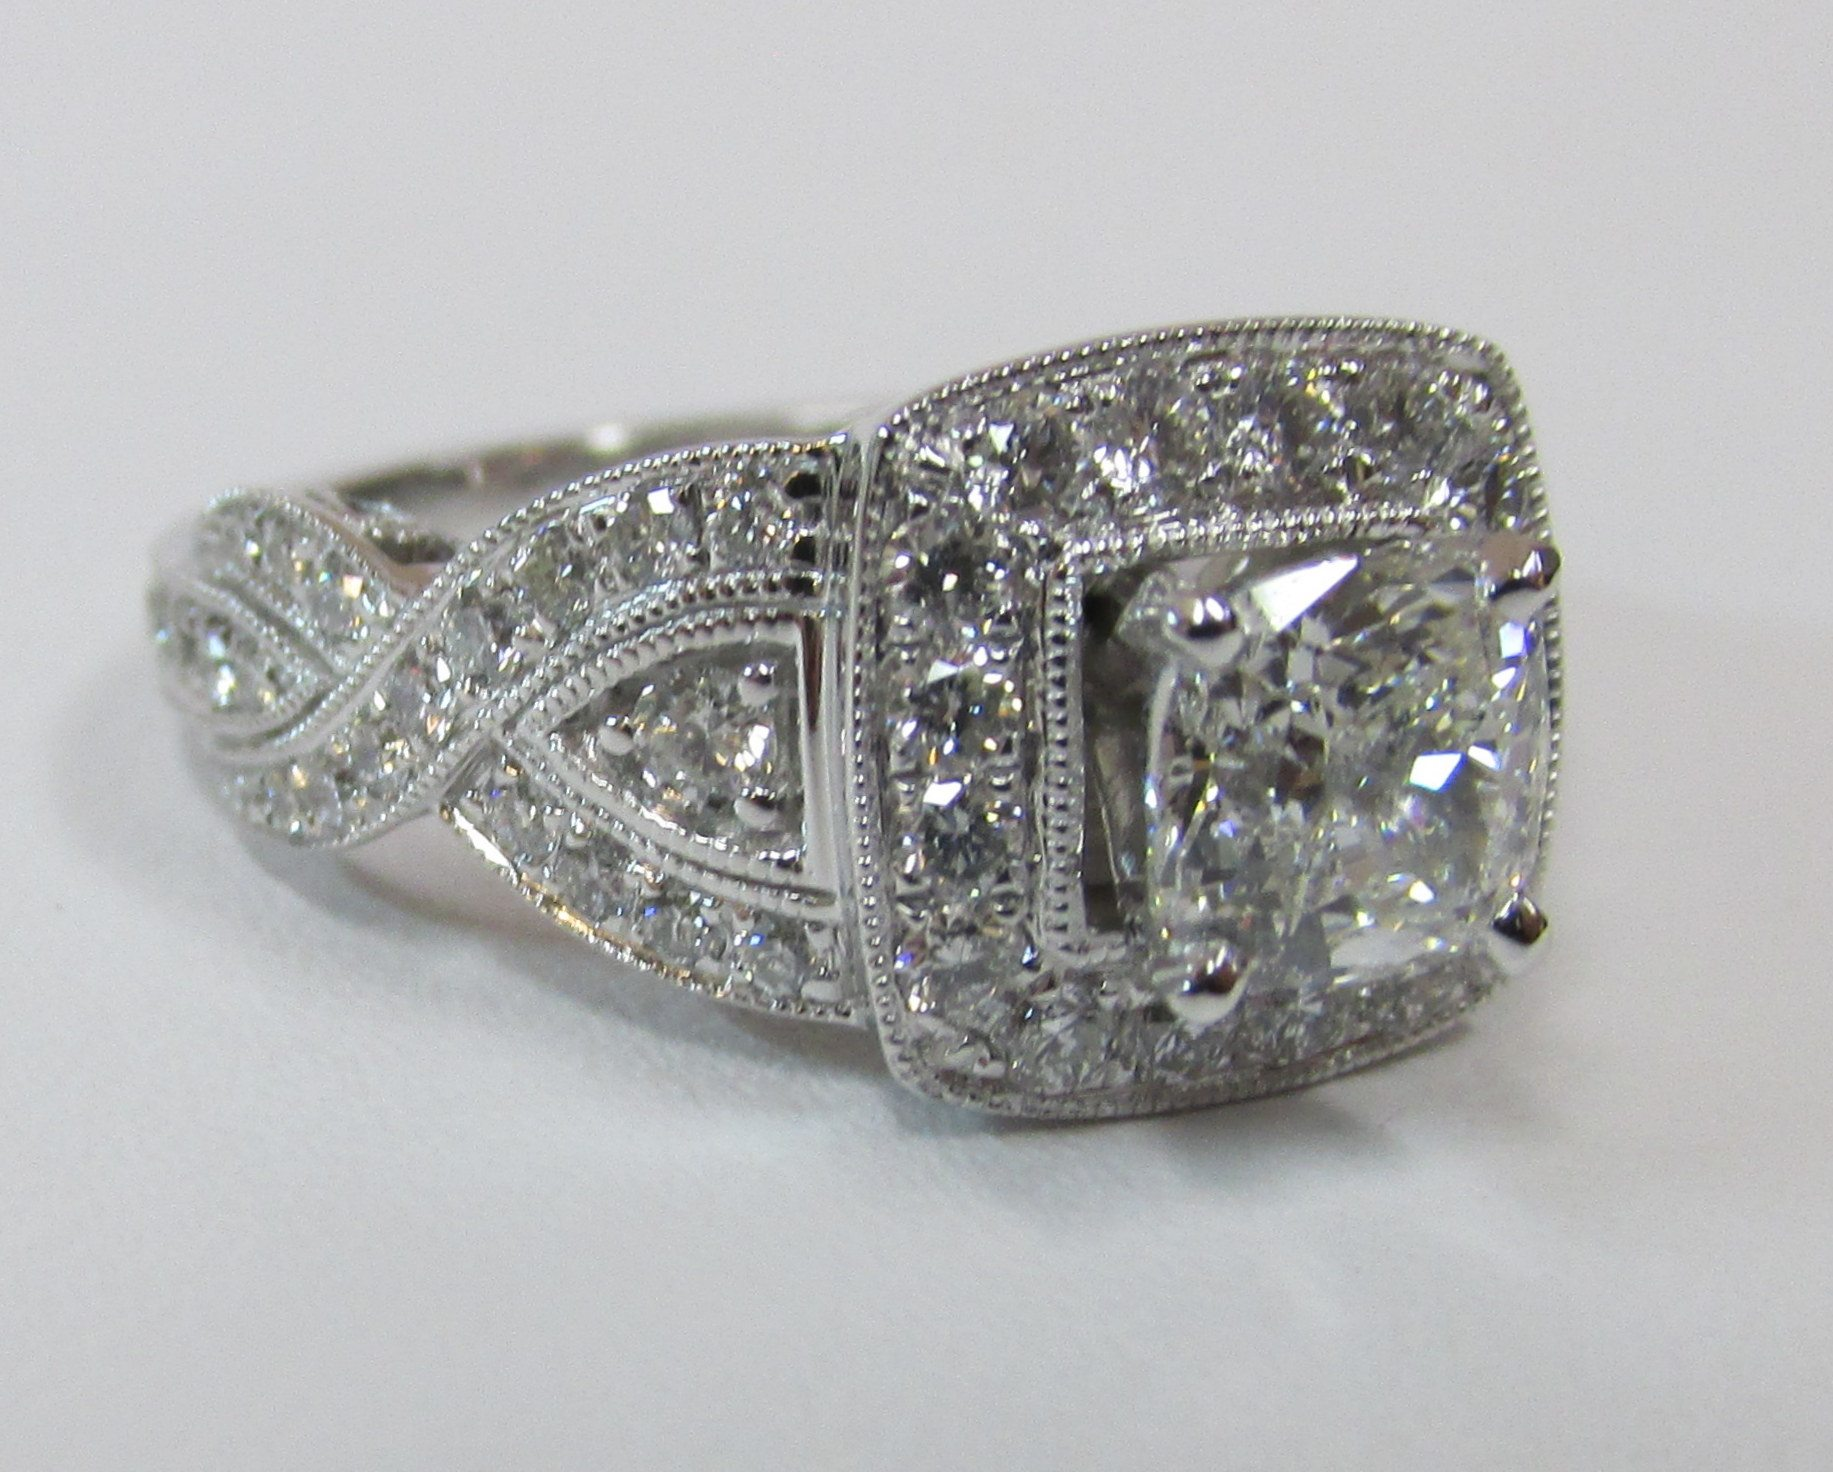 white en kay engagement rings zoom ct gold tw hover ring neil diamond lane to mv zm kaystore